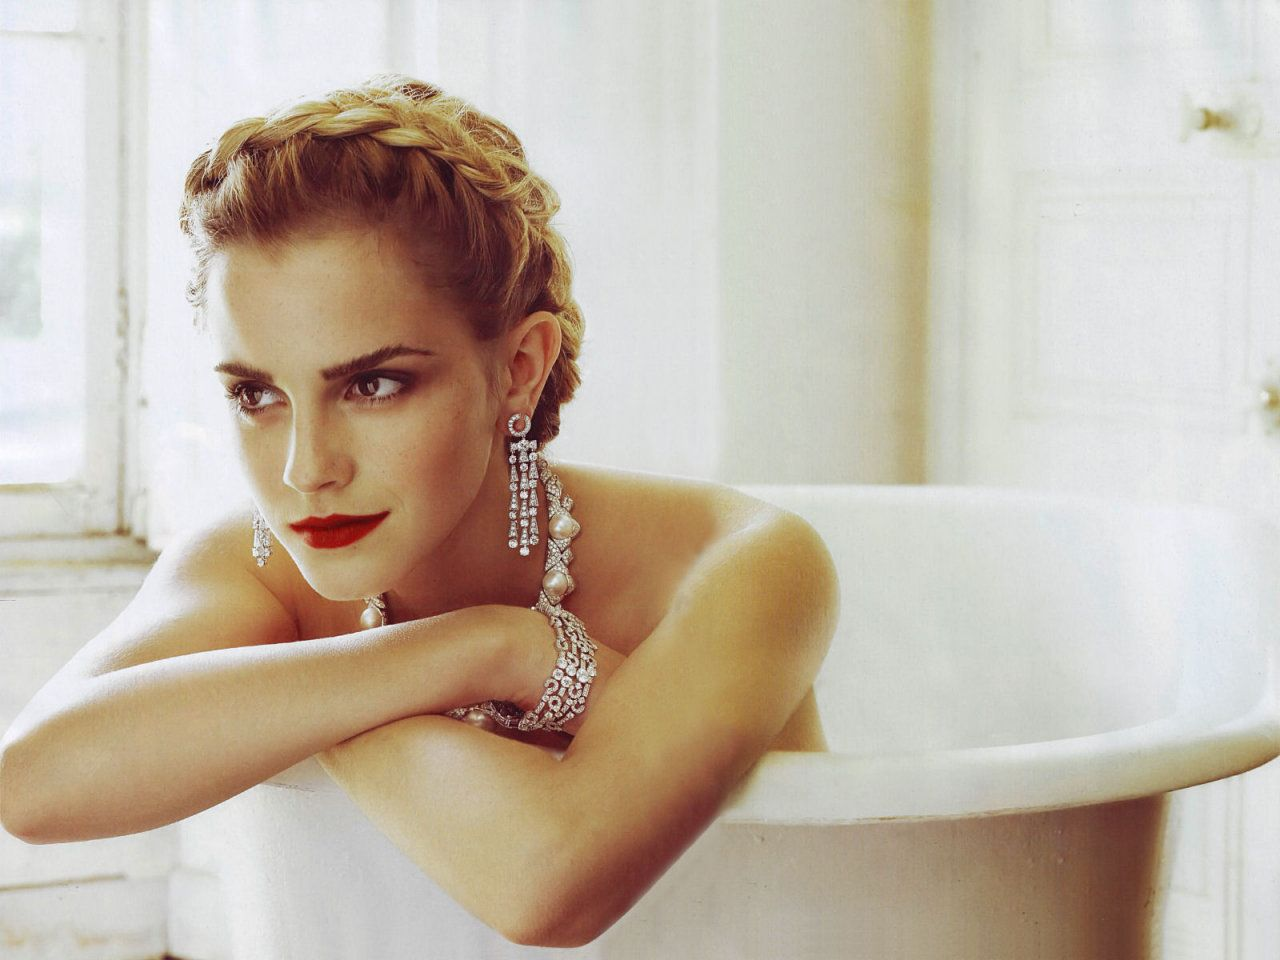 Emma Watson. Not just another naked girl in a bathtub.